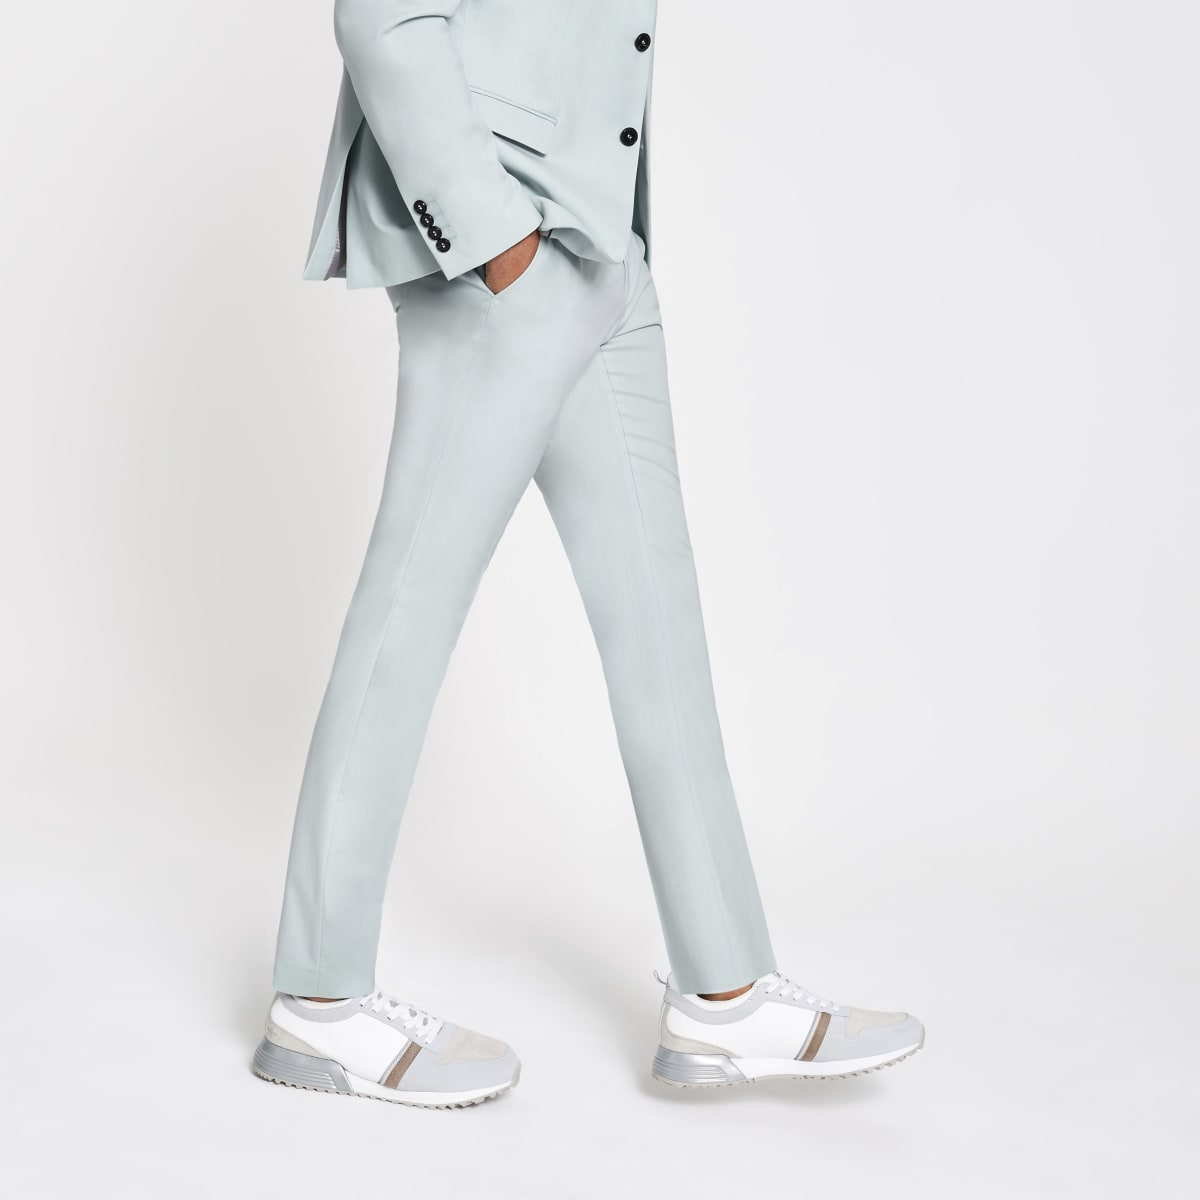 Selected Homme green slim fit suit strousers